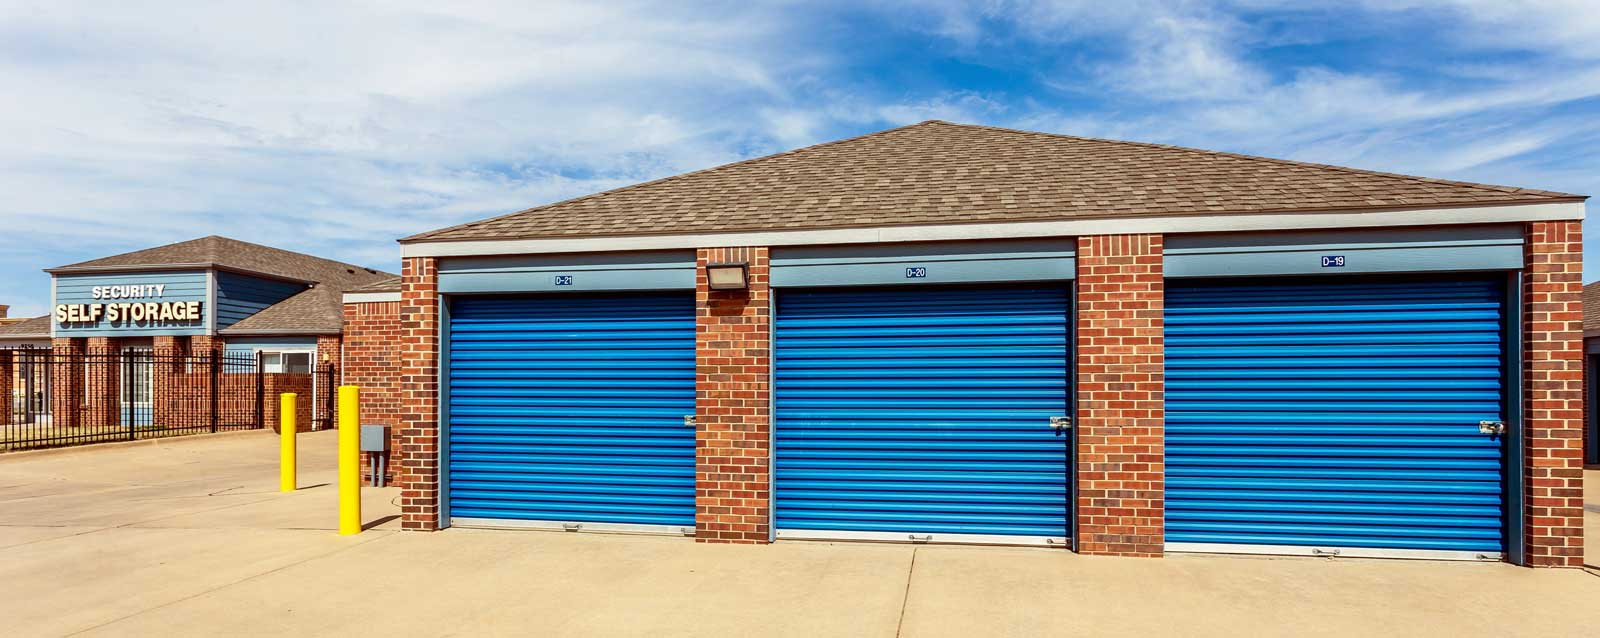 Self Storage In Mcconnell Air Force Base Wichita Offering